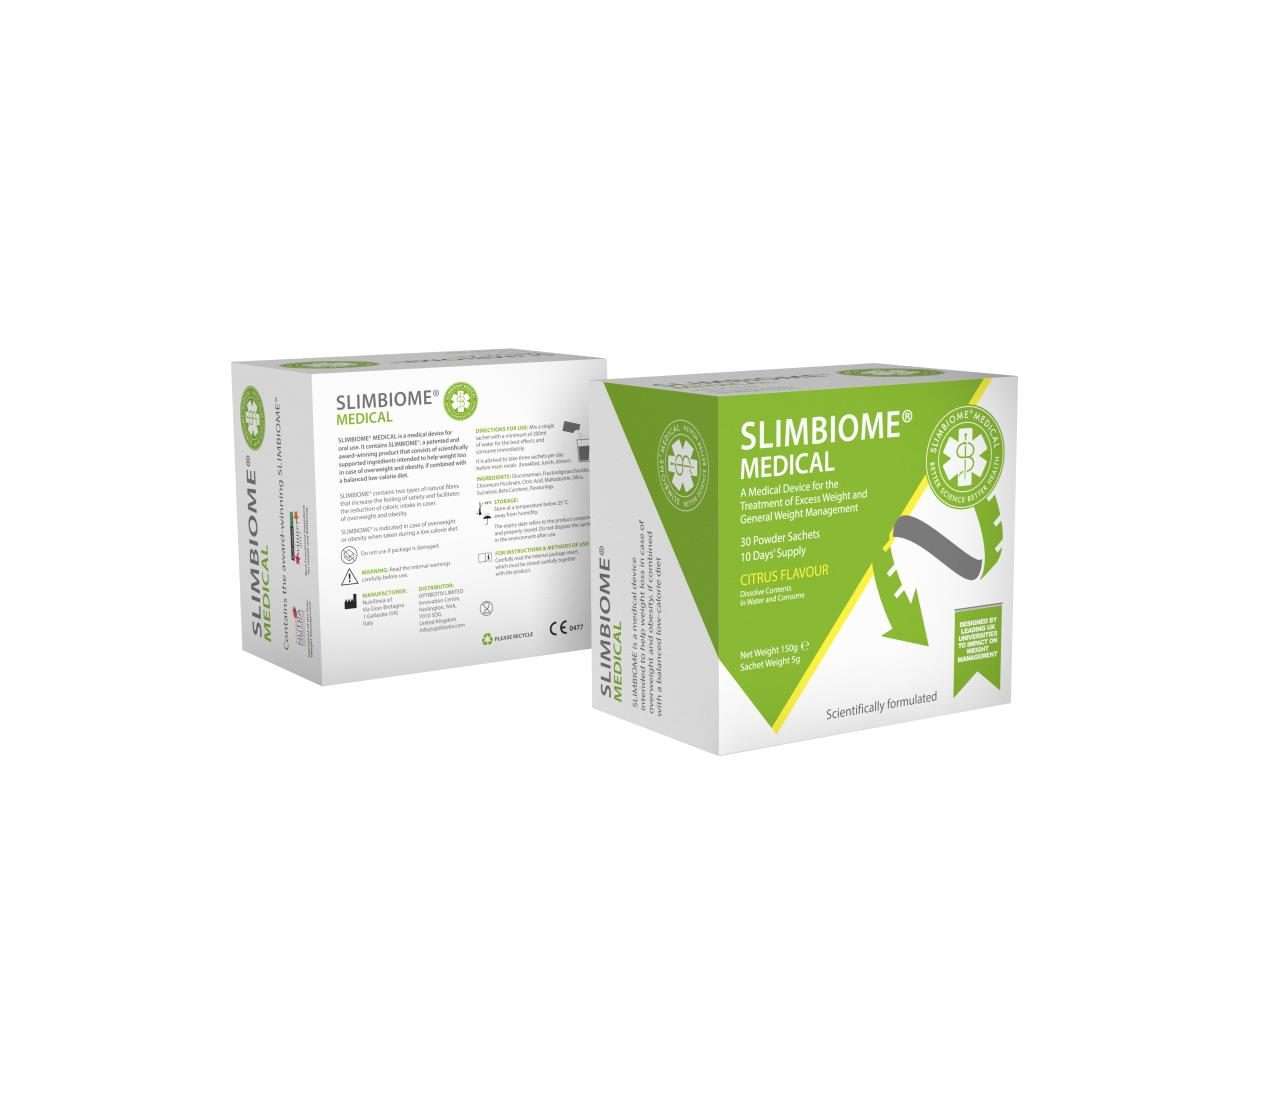 SlimBiome Medical Box